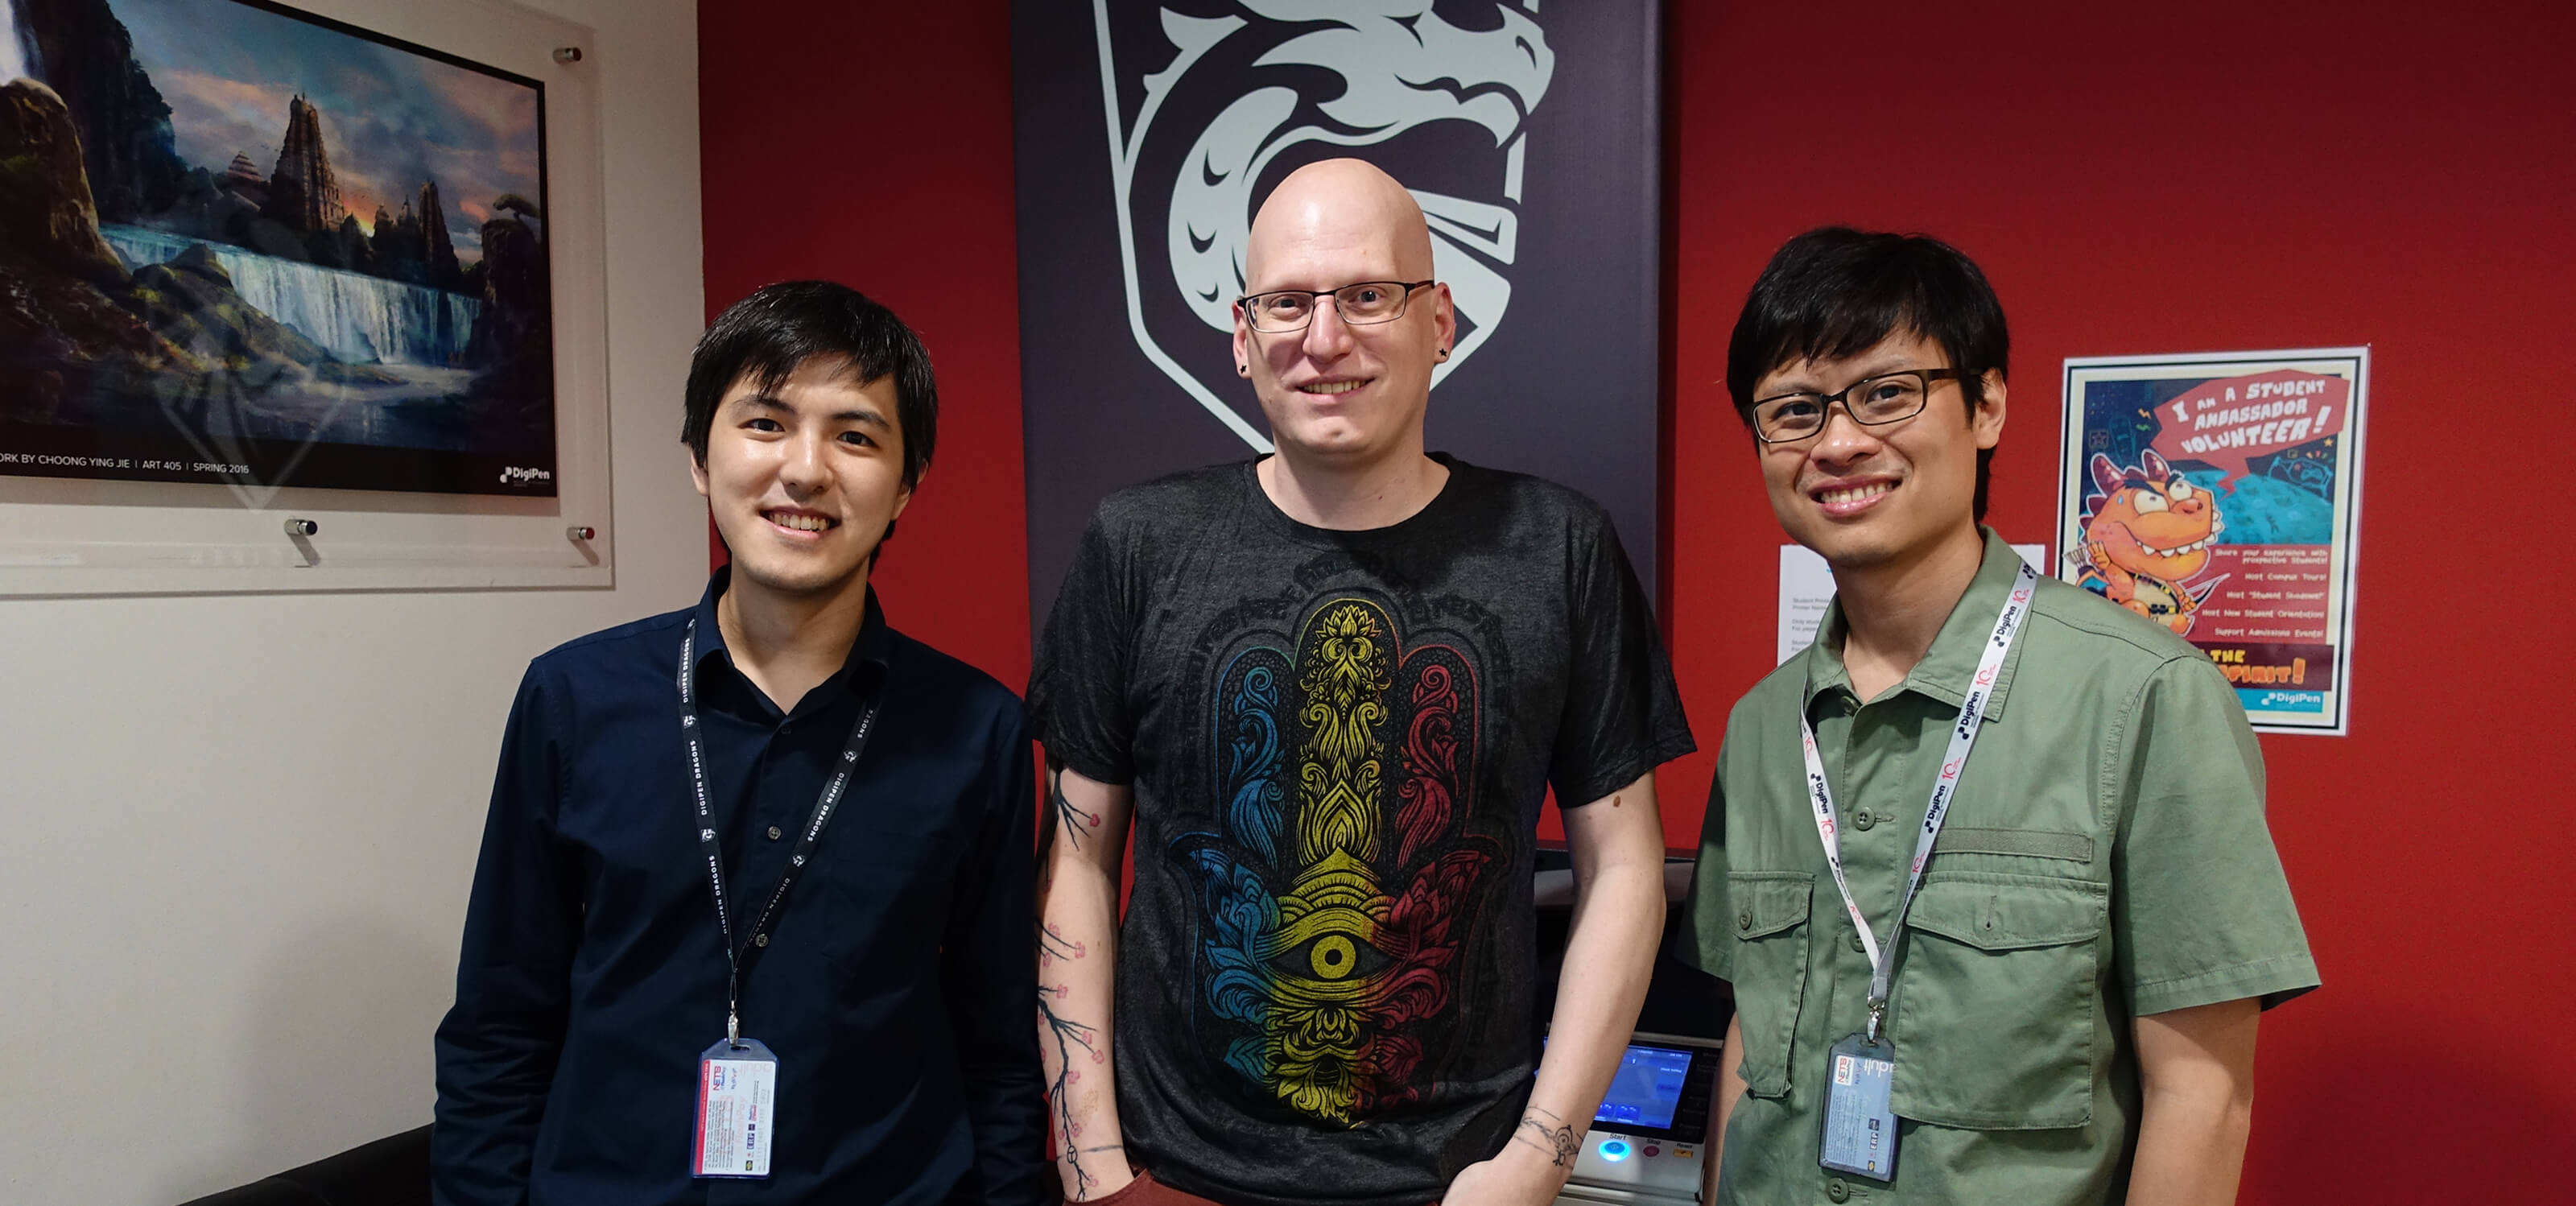 Howard Sin, Kevin Prior, and Gerald Wong pose smiling in an office on the DigiPen (Singapore) campus